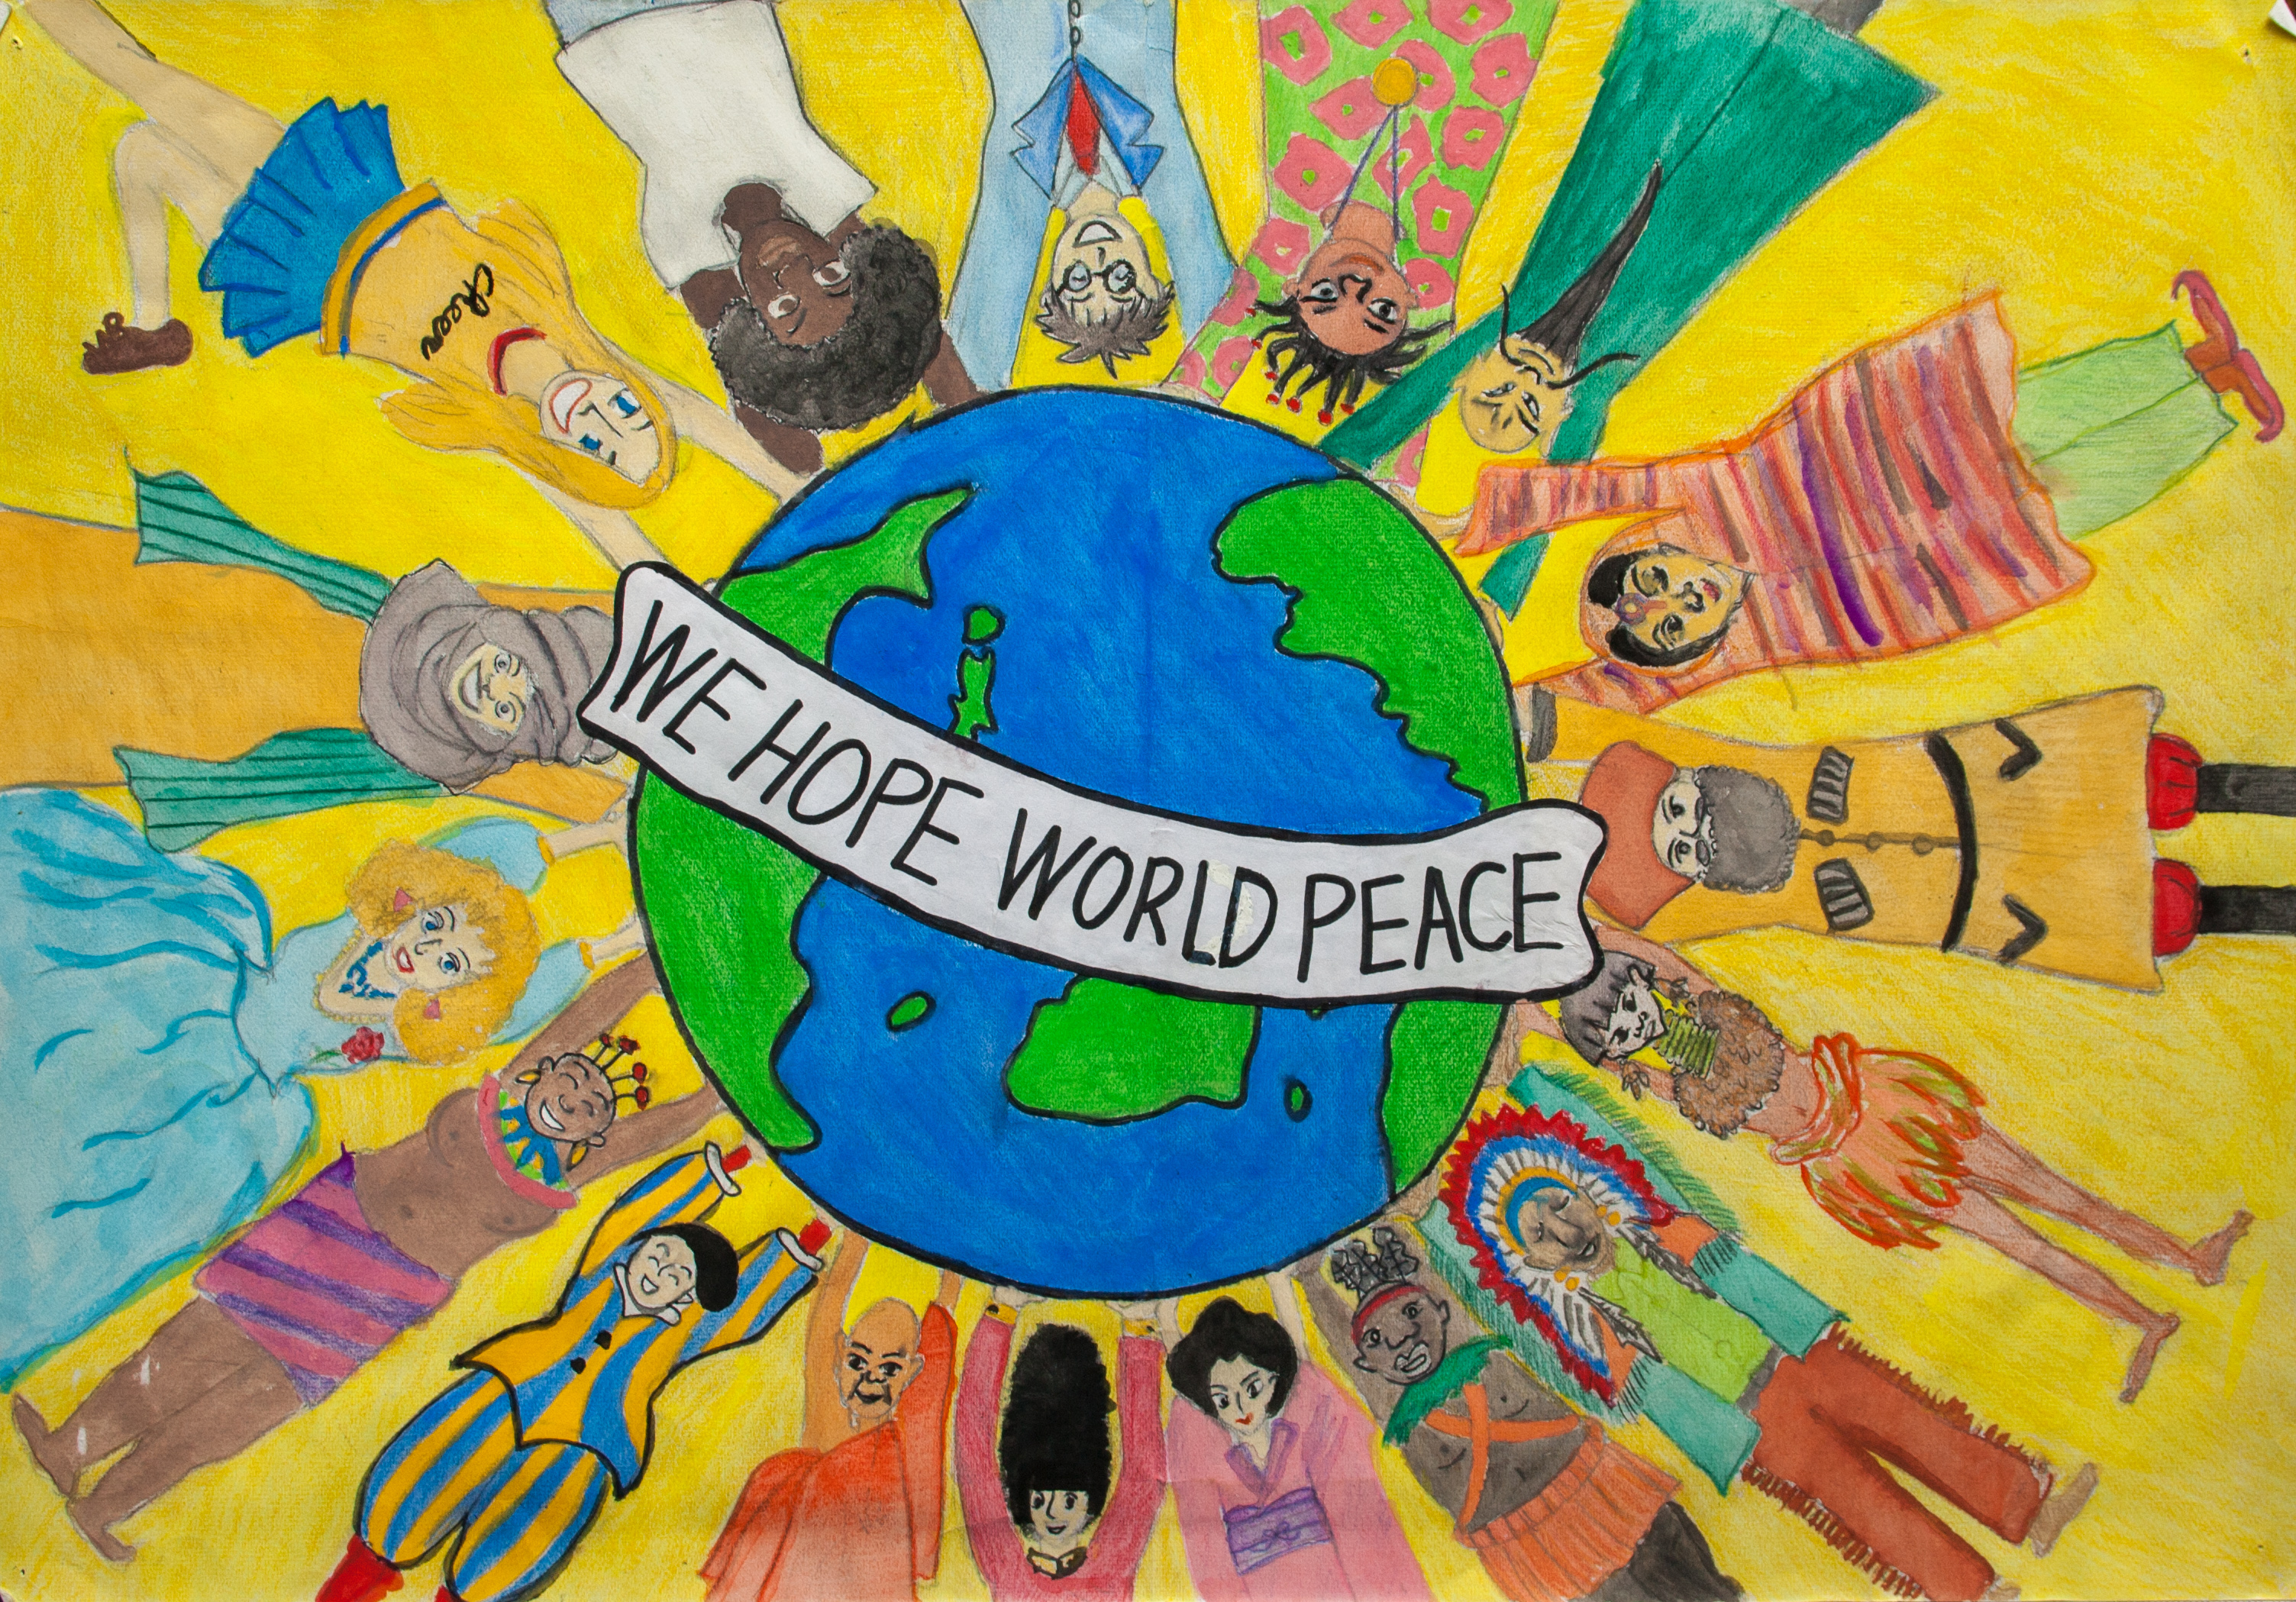 We hope world peace children map their world we hope world peace publicscrutiny Image collections